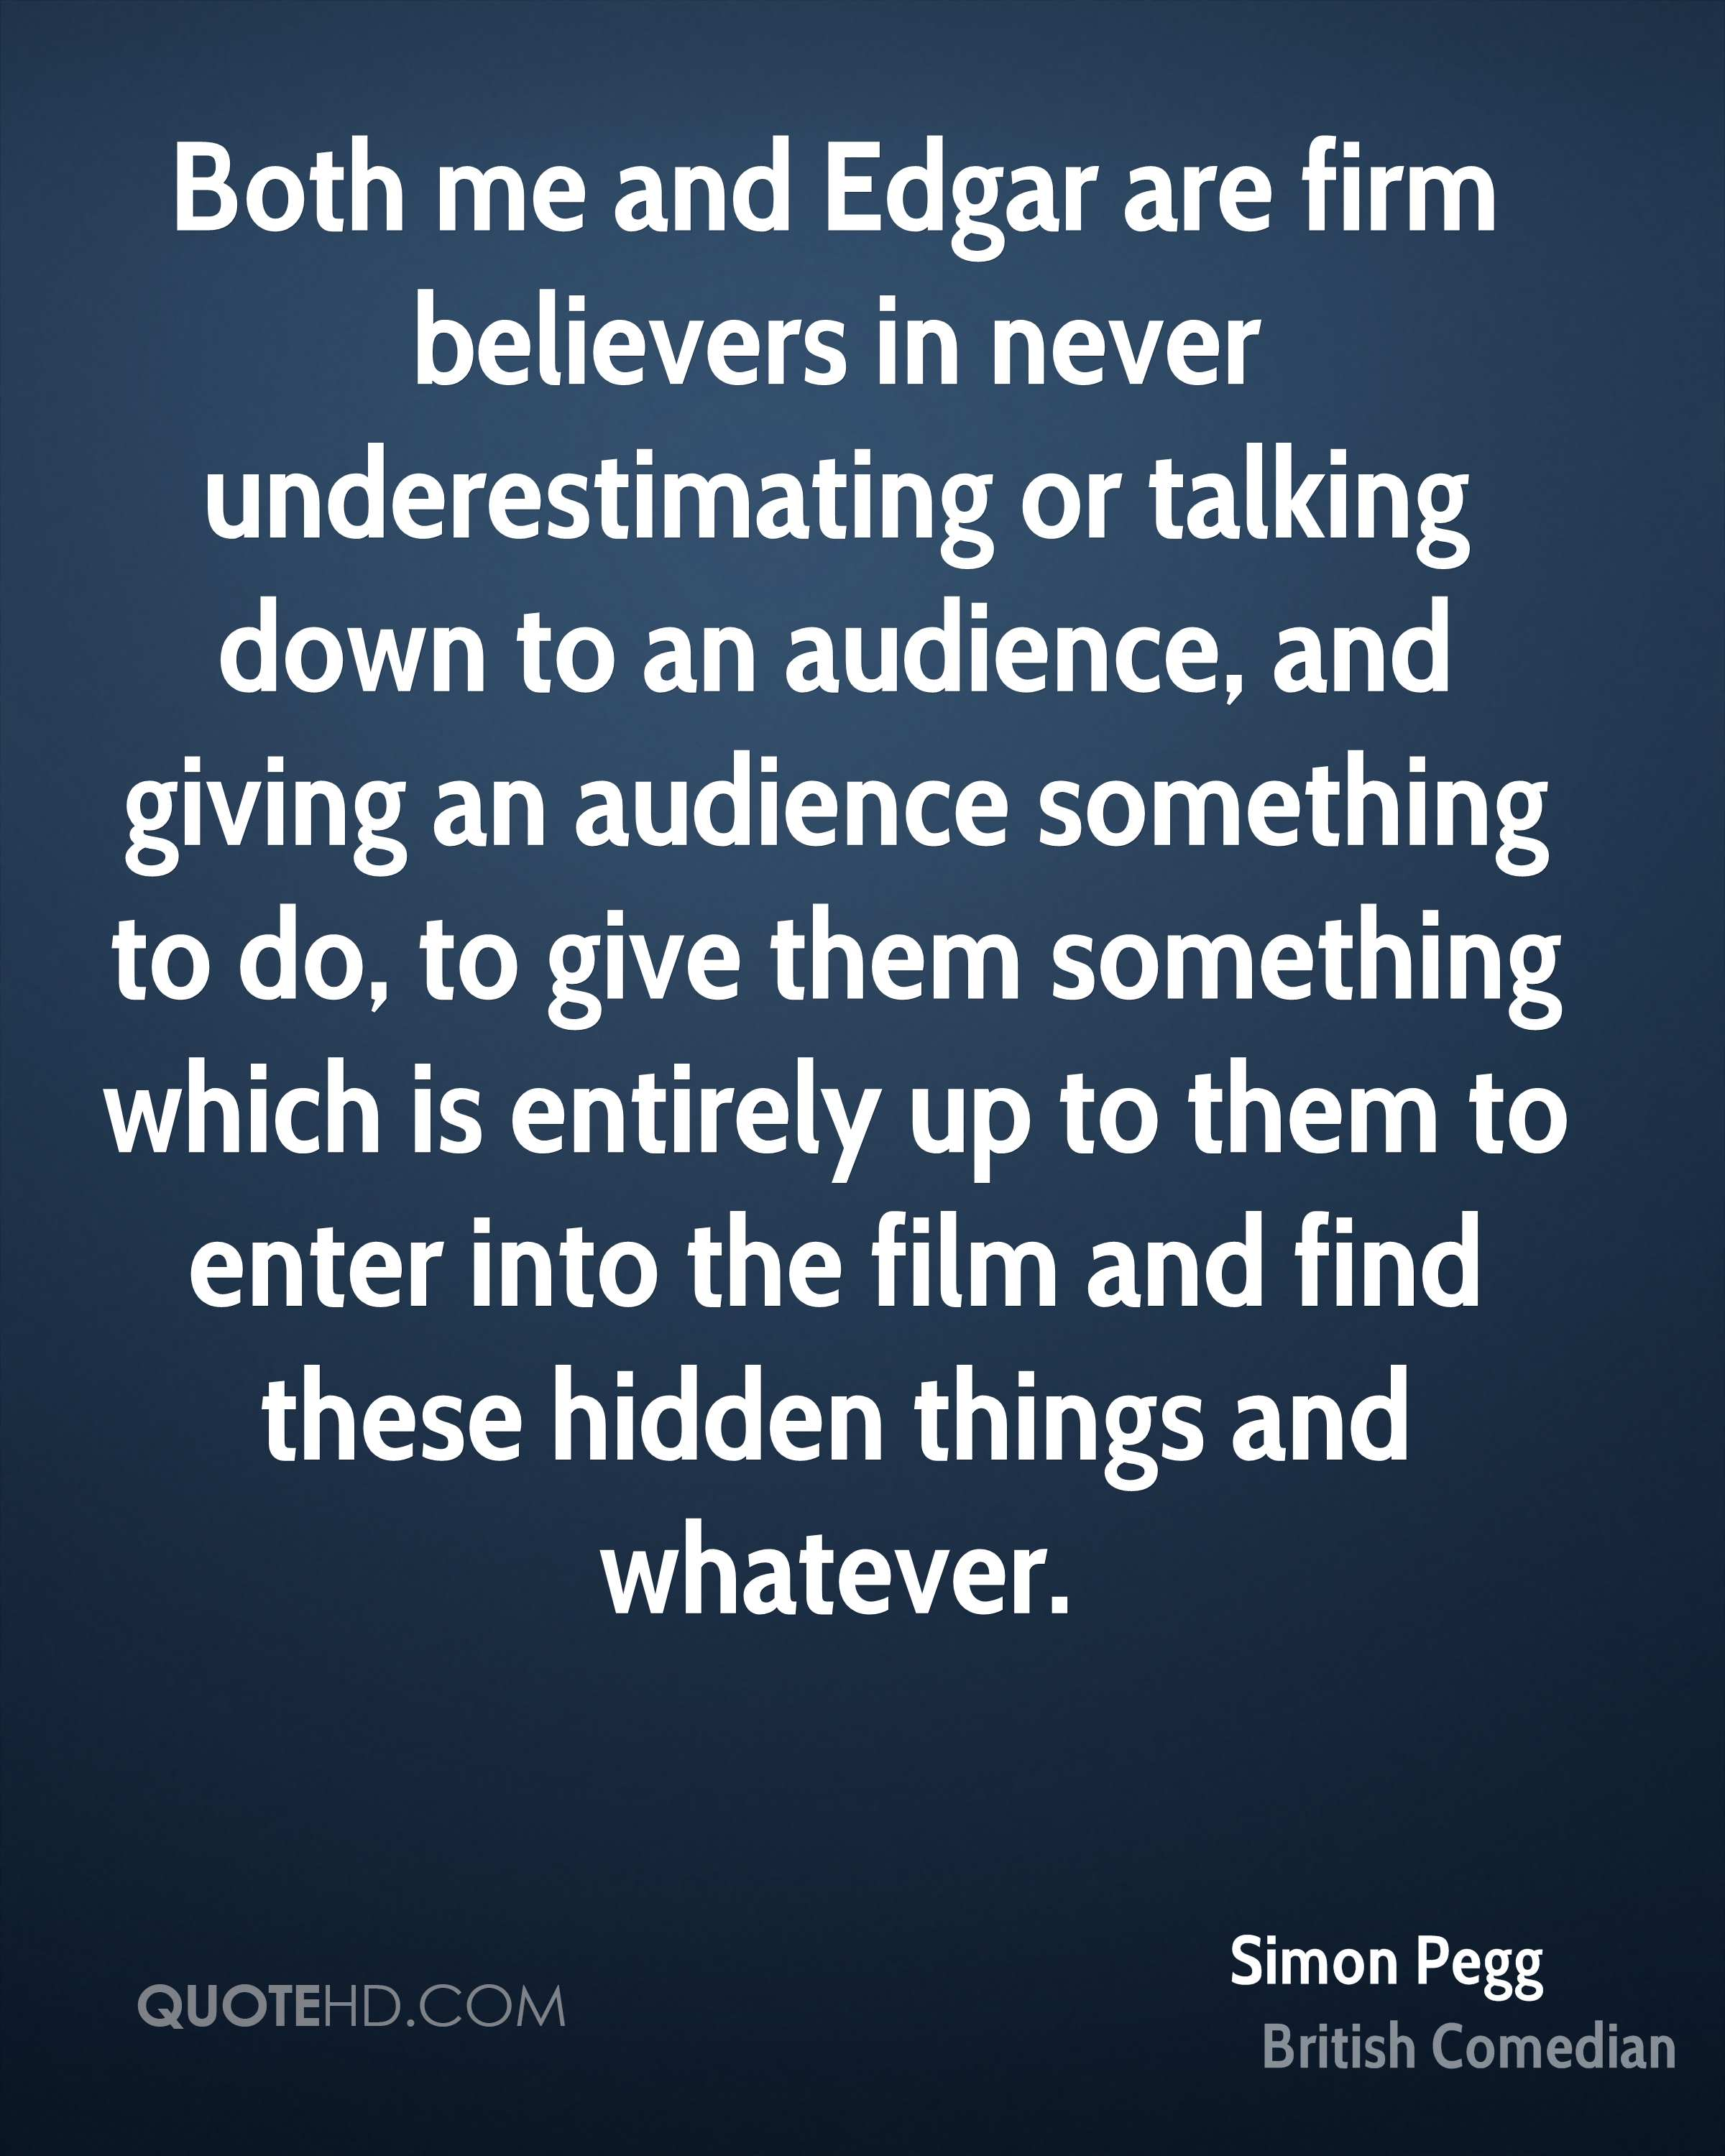 Both me and Edgar are firm believers in never underestimating or talking down to an audience, and giving an audience something to do, to give them something which is entirely up to them to enter into the film and find these hidden things and whatever.